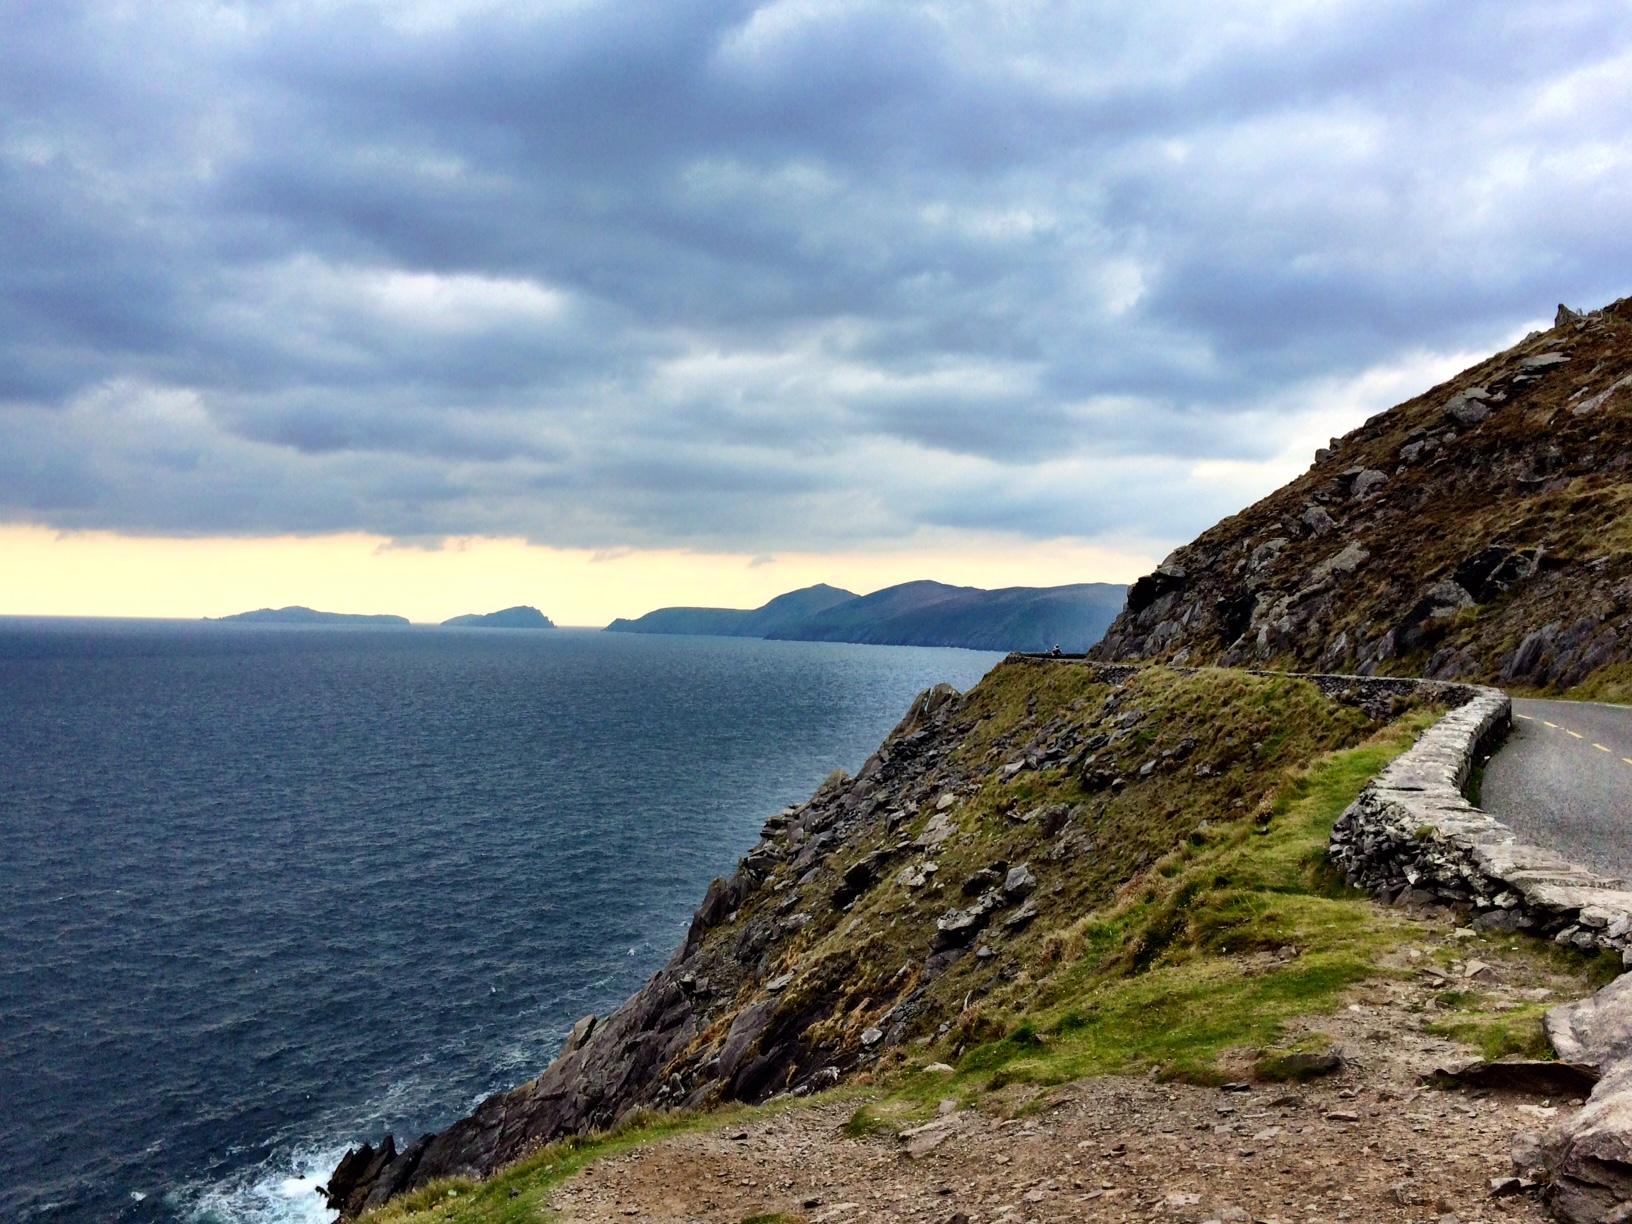 Slea Head, Carrignaparka Beach and Clogher Head